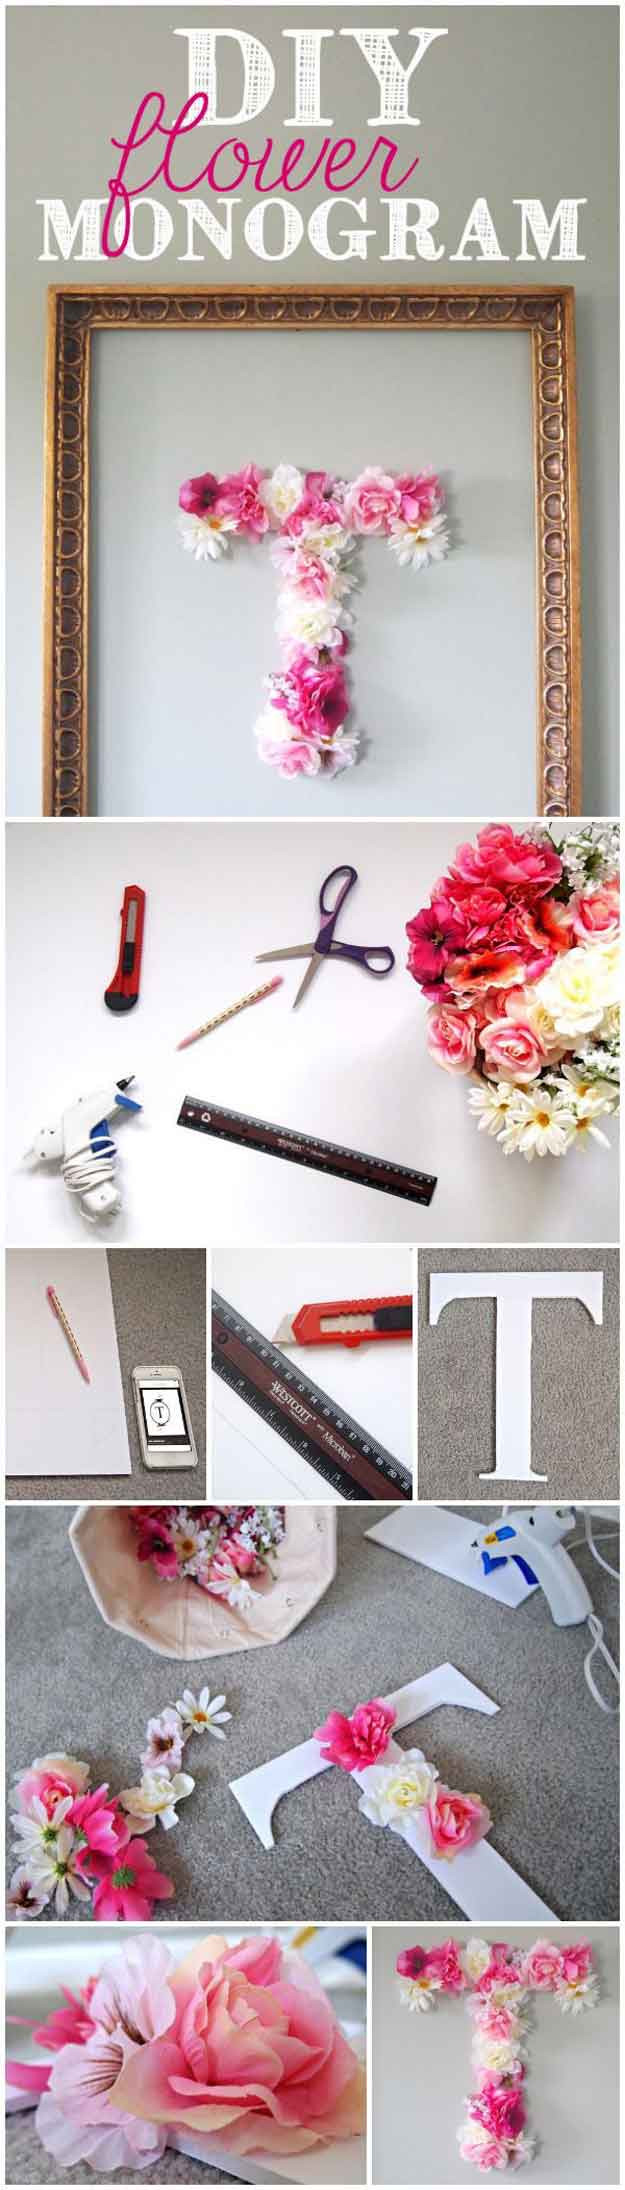 Best ideas about DIY Room Decor For Teens . Save or Pin DIY Projects for Teens Bedroom DIY Ready Now.